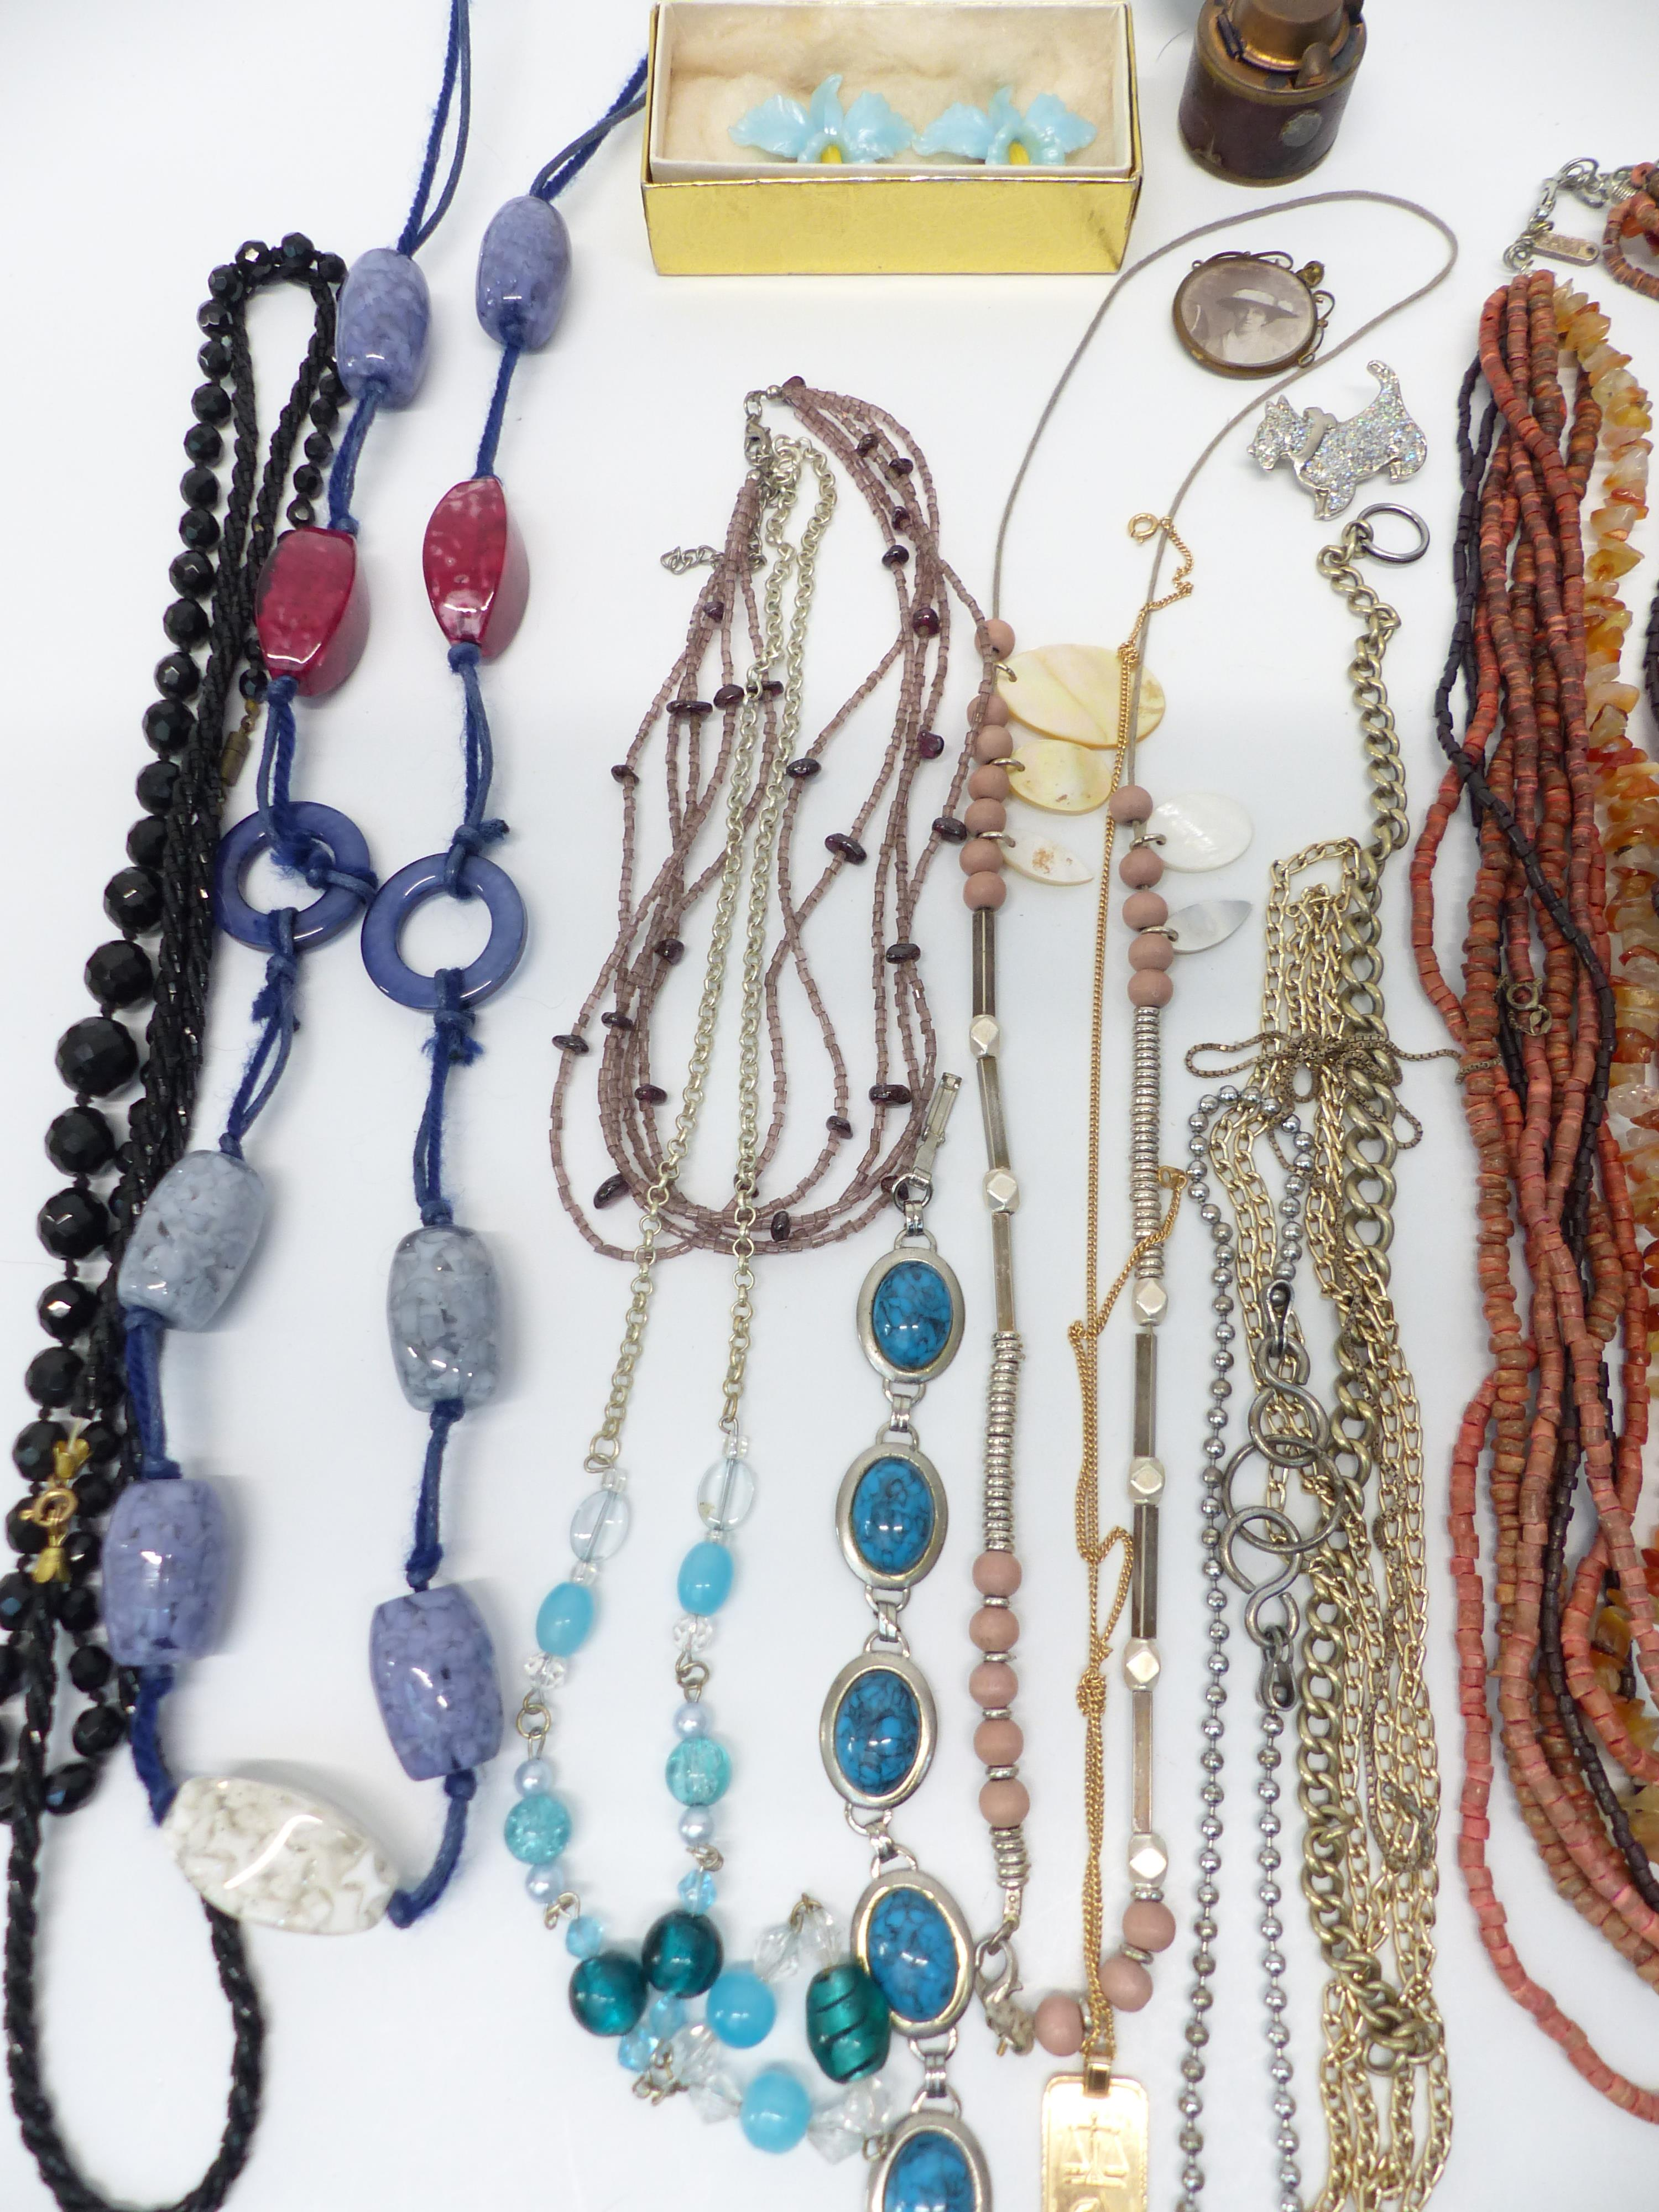 A collection of jewellery including necklaces, vintage brooches, etc - Image 3 of 4